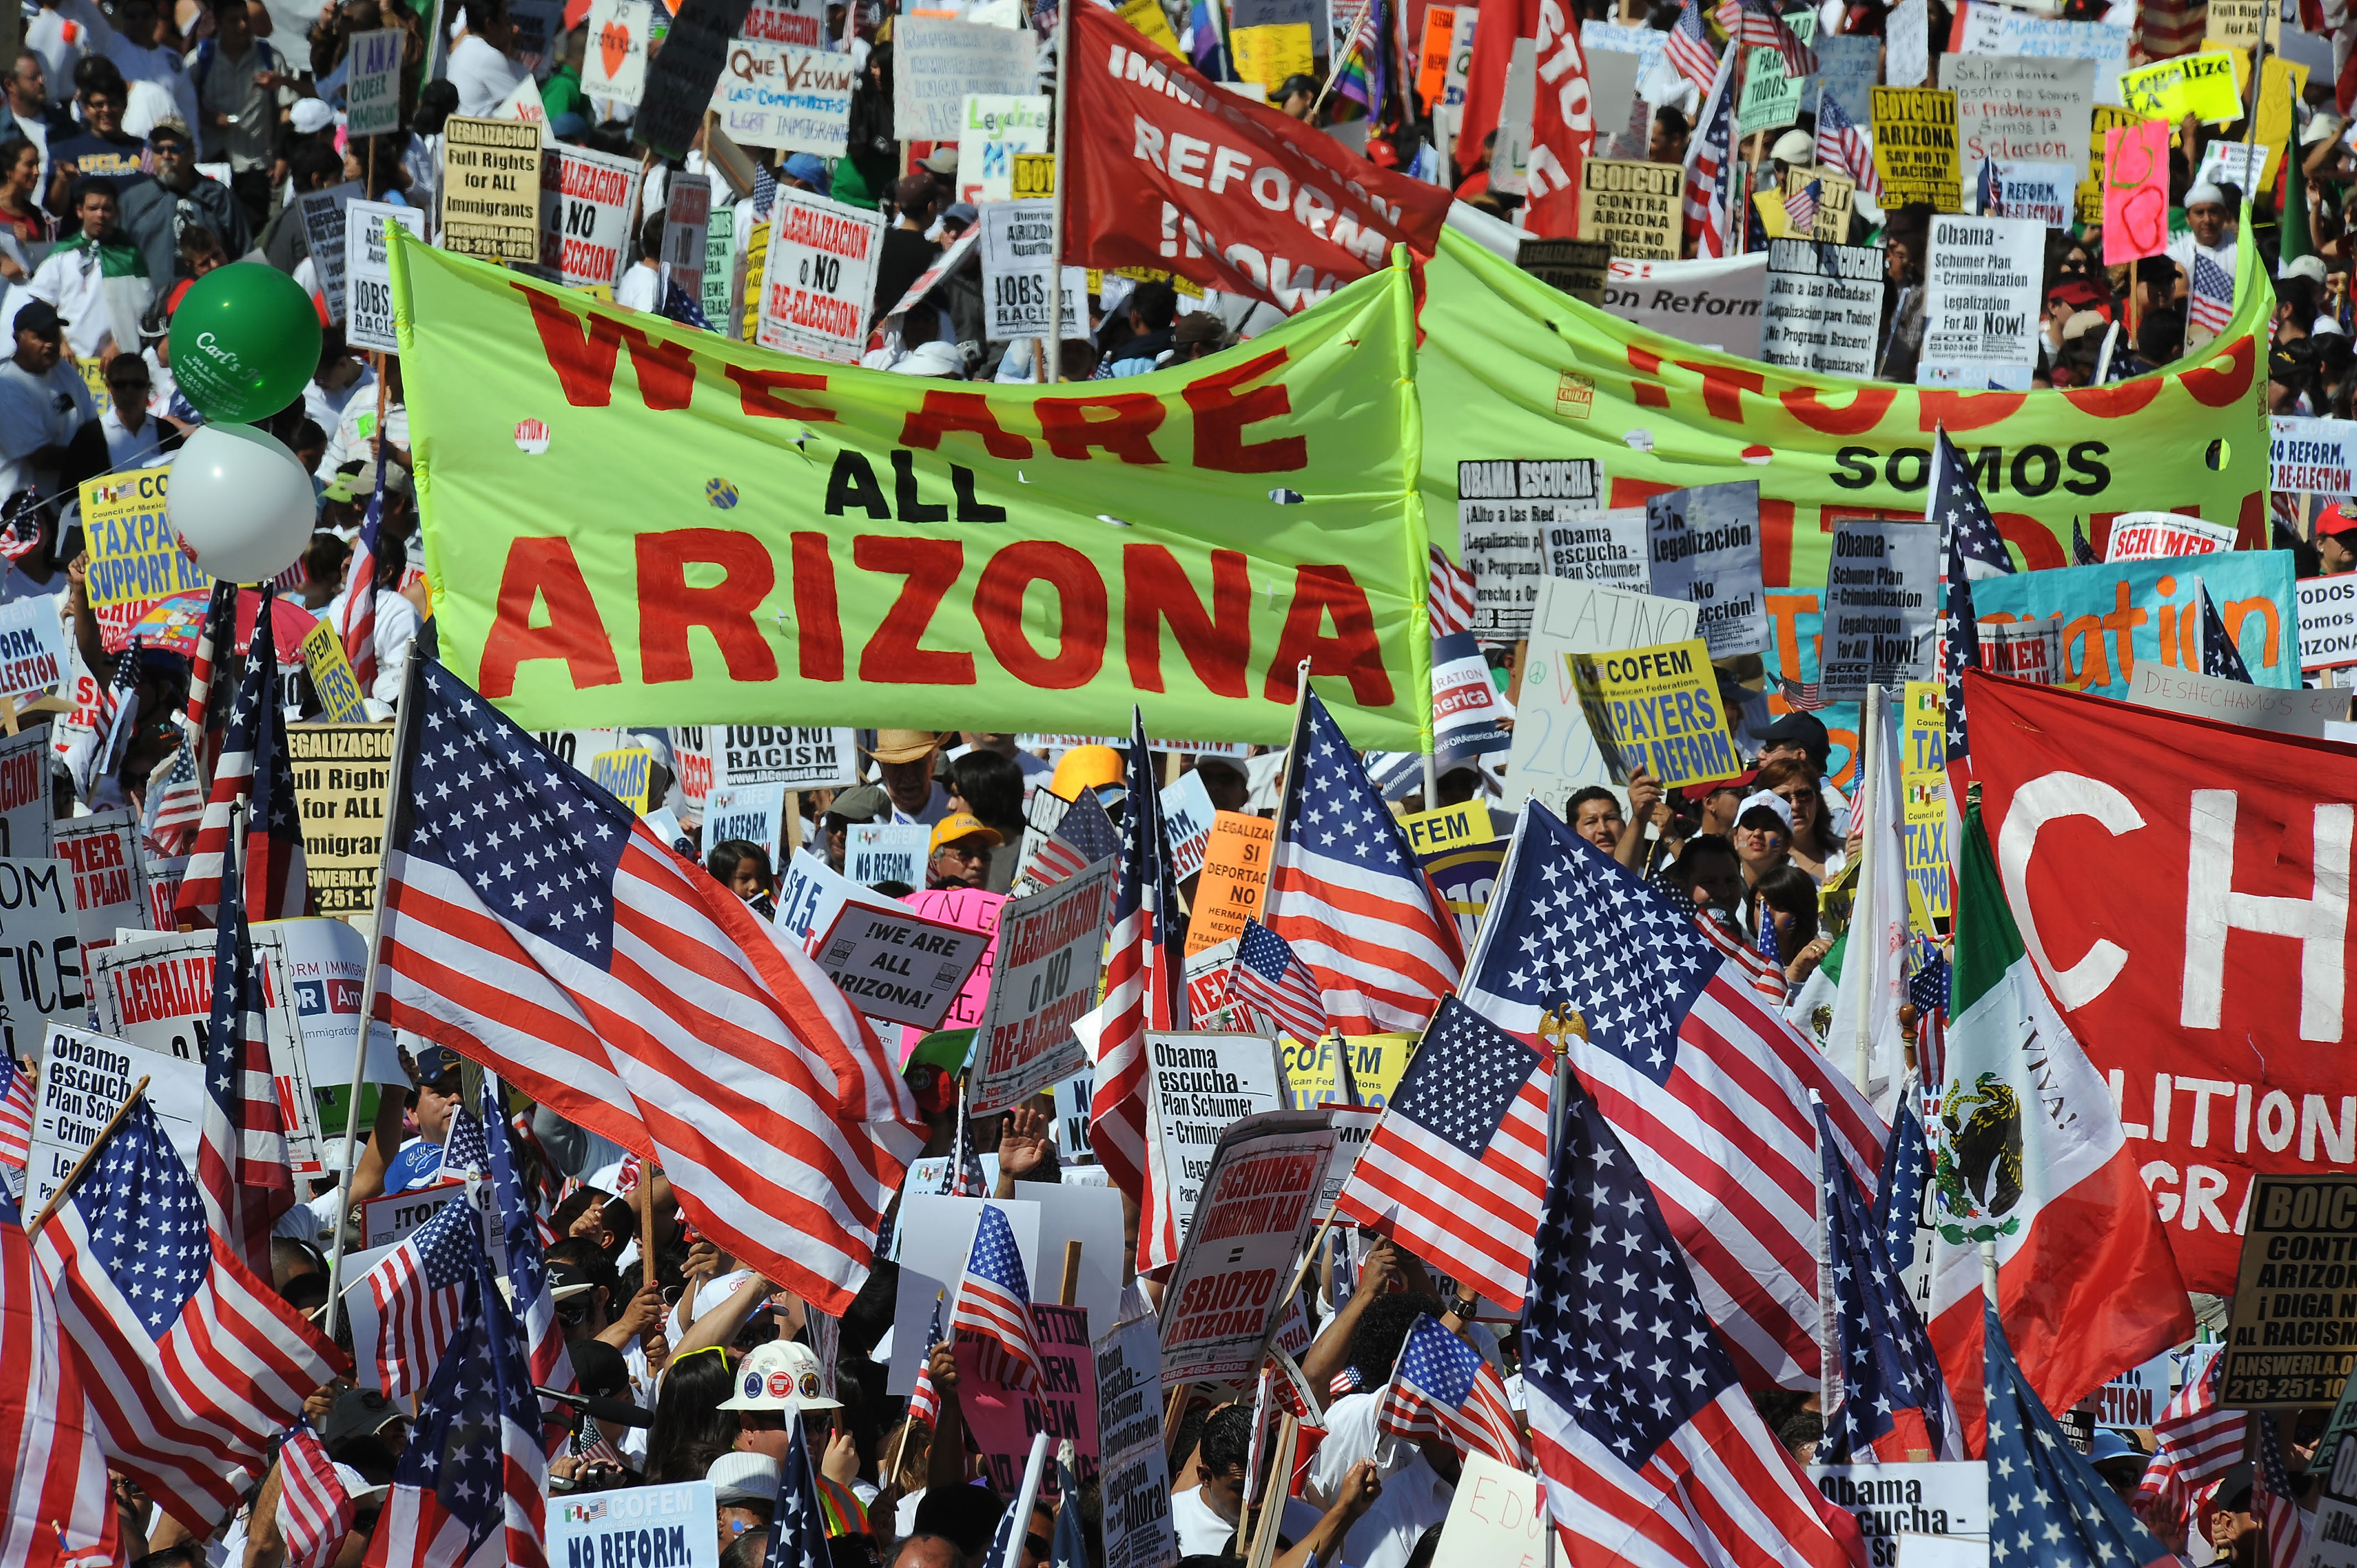 arizona immigration law pros and cons